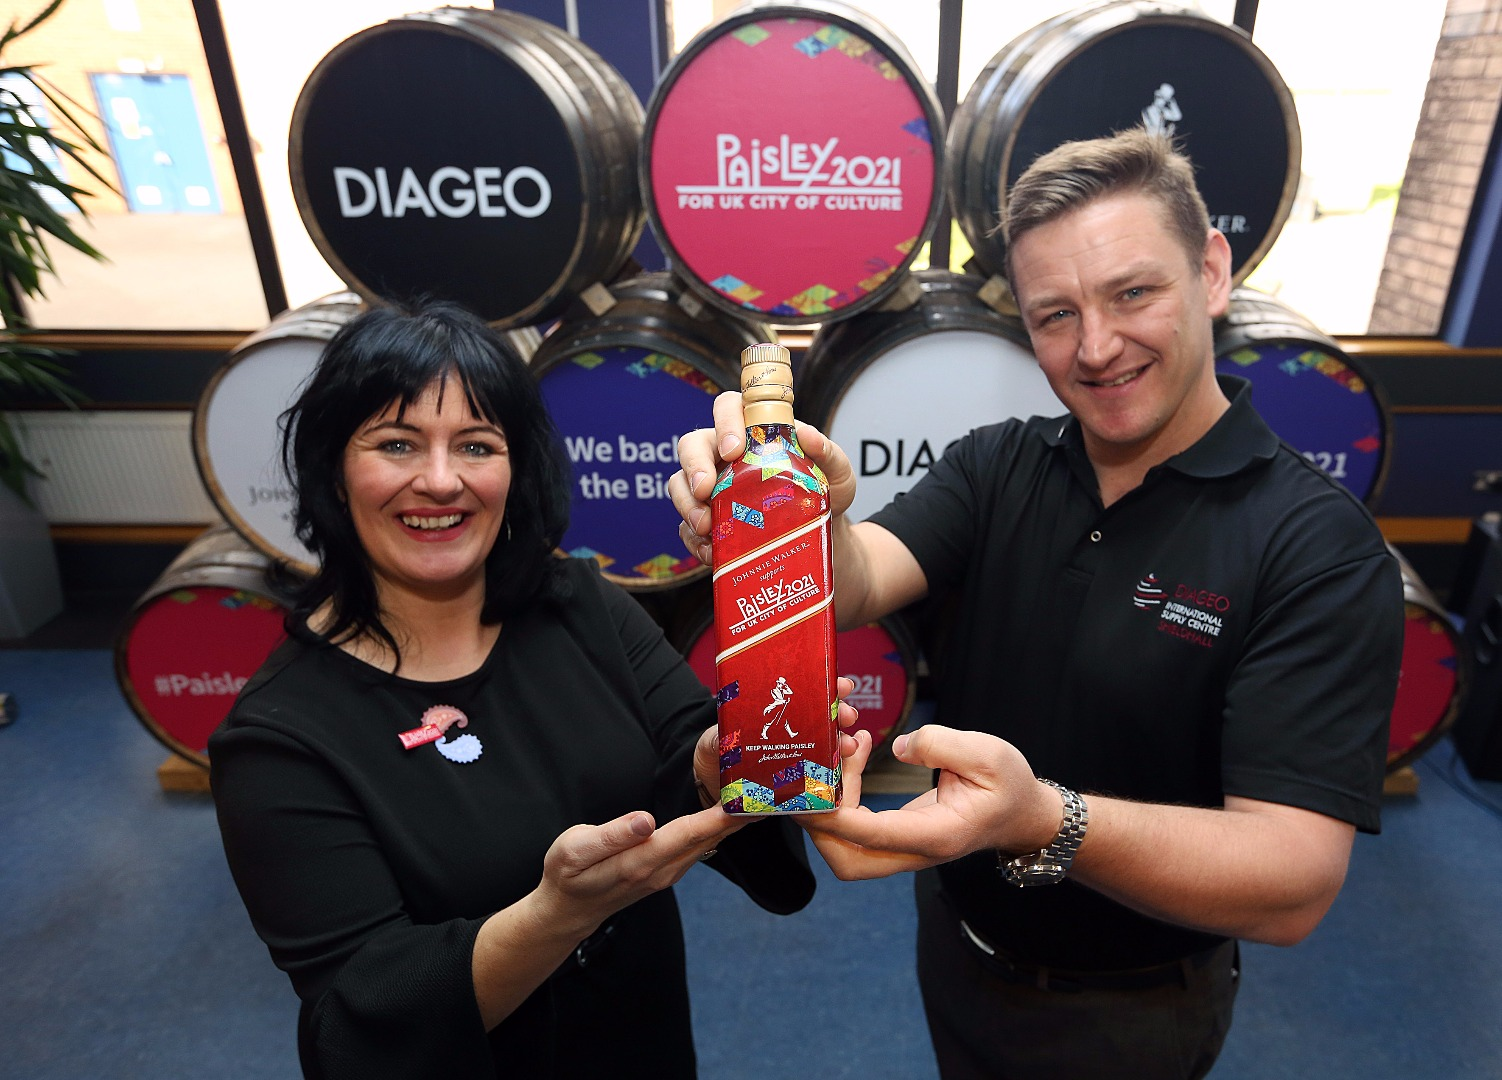 Diageo back Paisley 2021 bid with special Johnnie Walker bottles